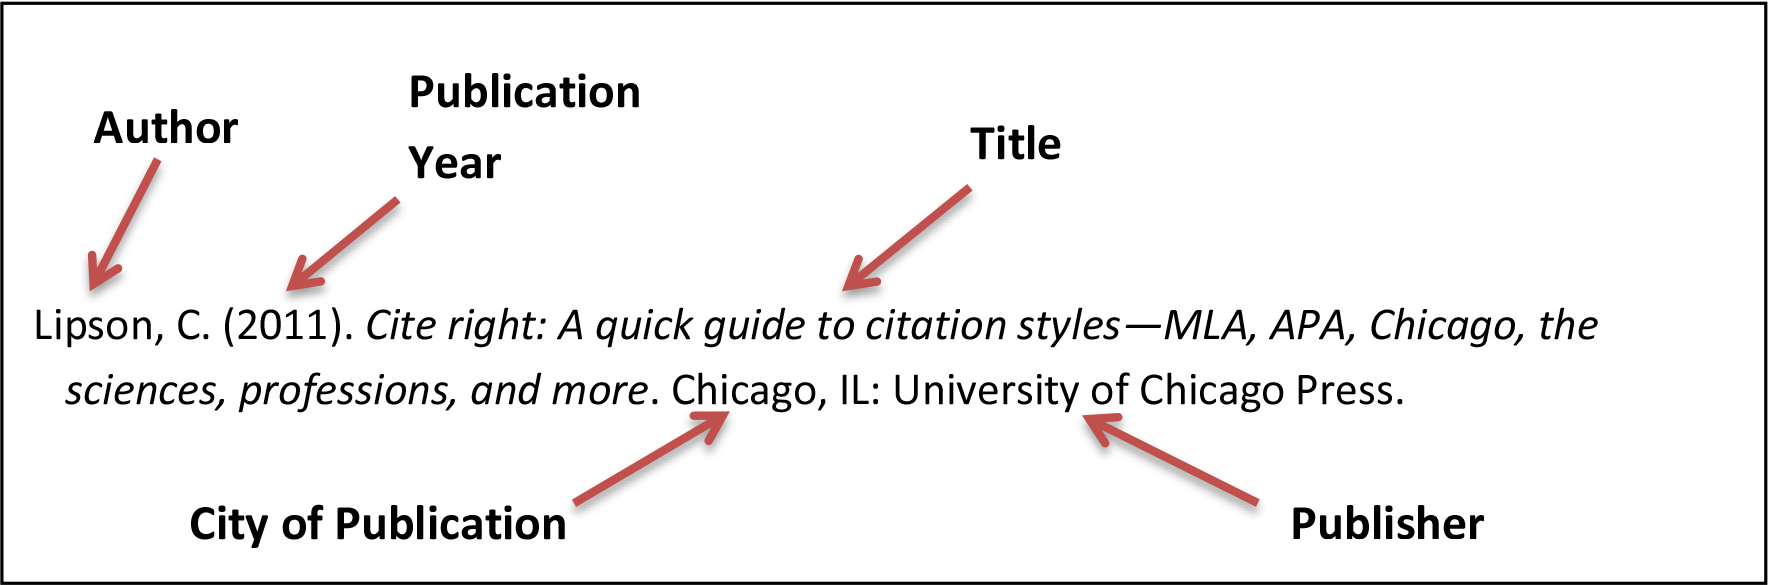 how to work cite a website in apa format Easybib apa mla chicago format citation machine generator page, post easybib apa mla chicago format citation machine generator.